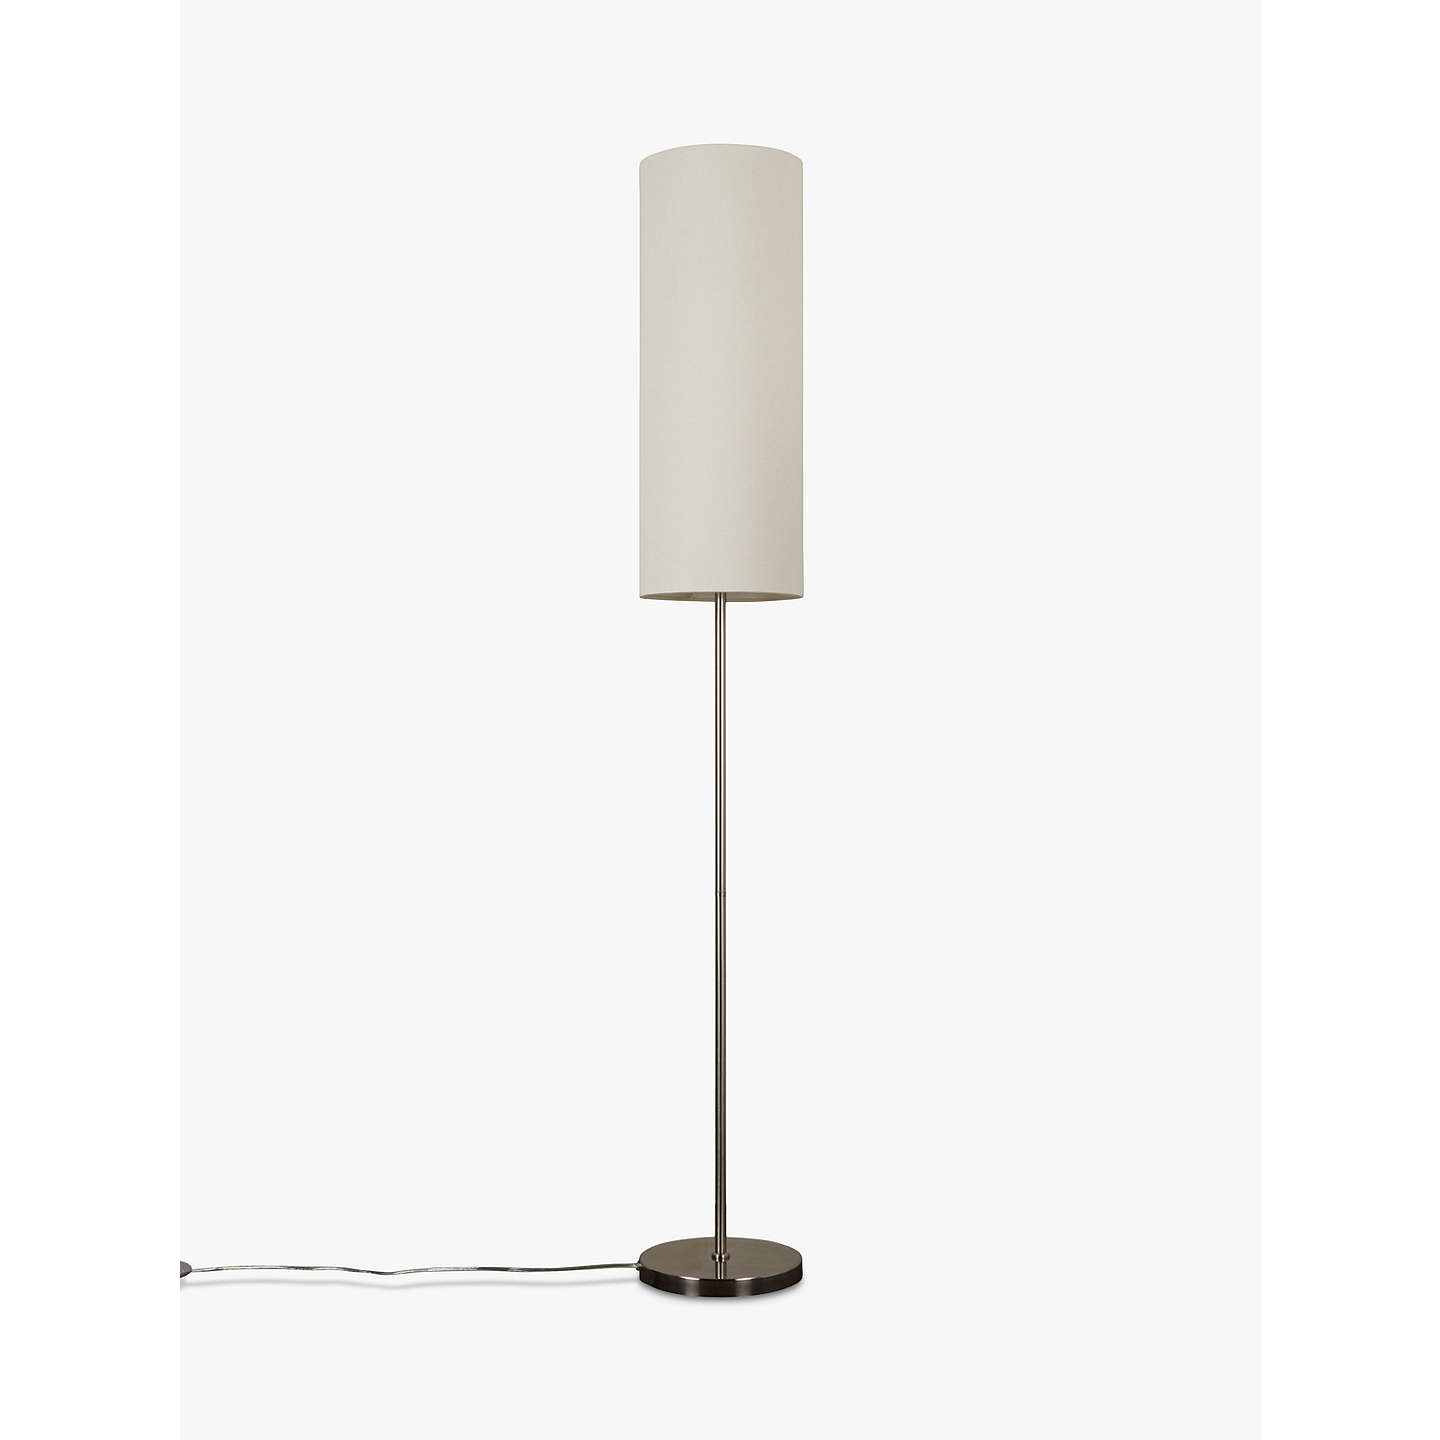 John lewis chrissie slim shade floor lamp satin nickel at john lewis buyjohn lewis chrissie slim shade floor lamp satin nickel online at johnlewis mozeypictures Gallery